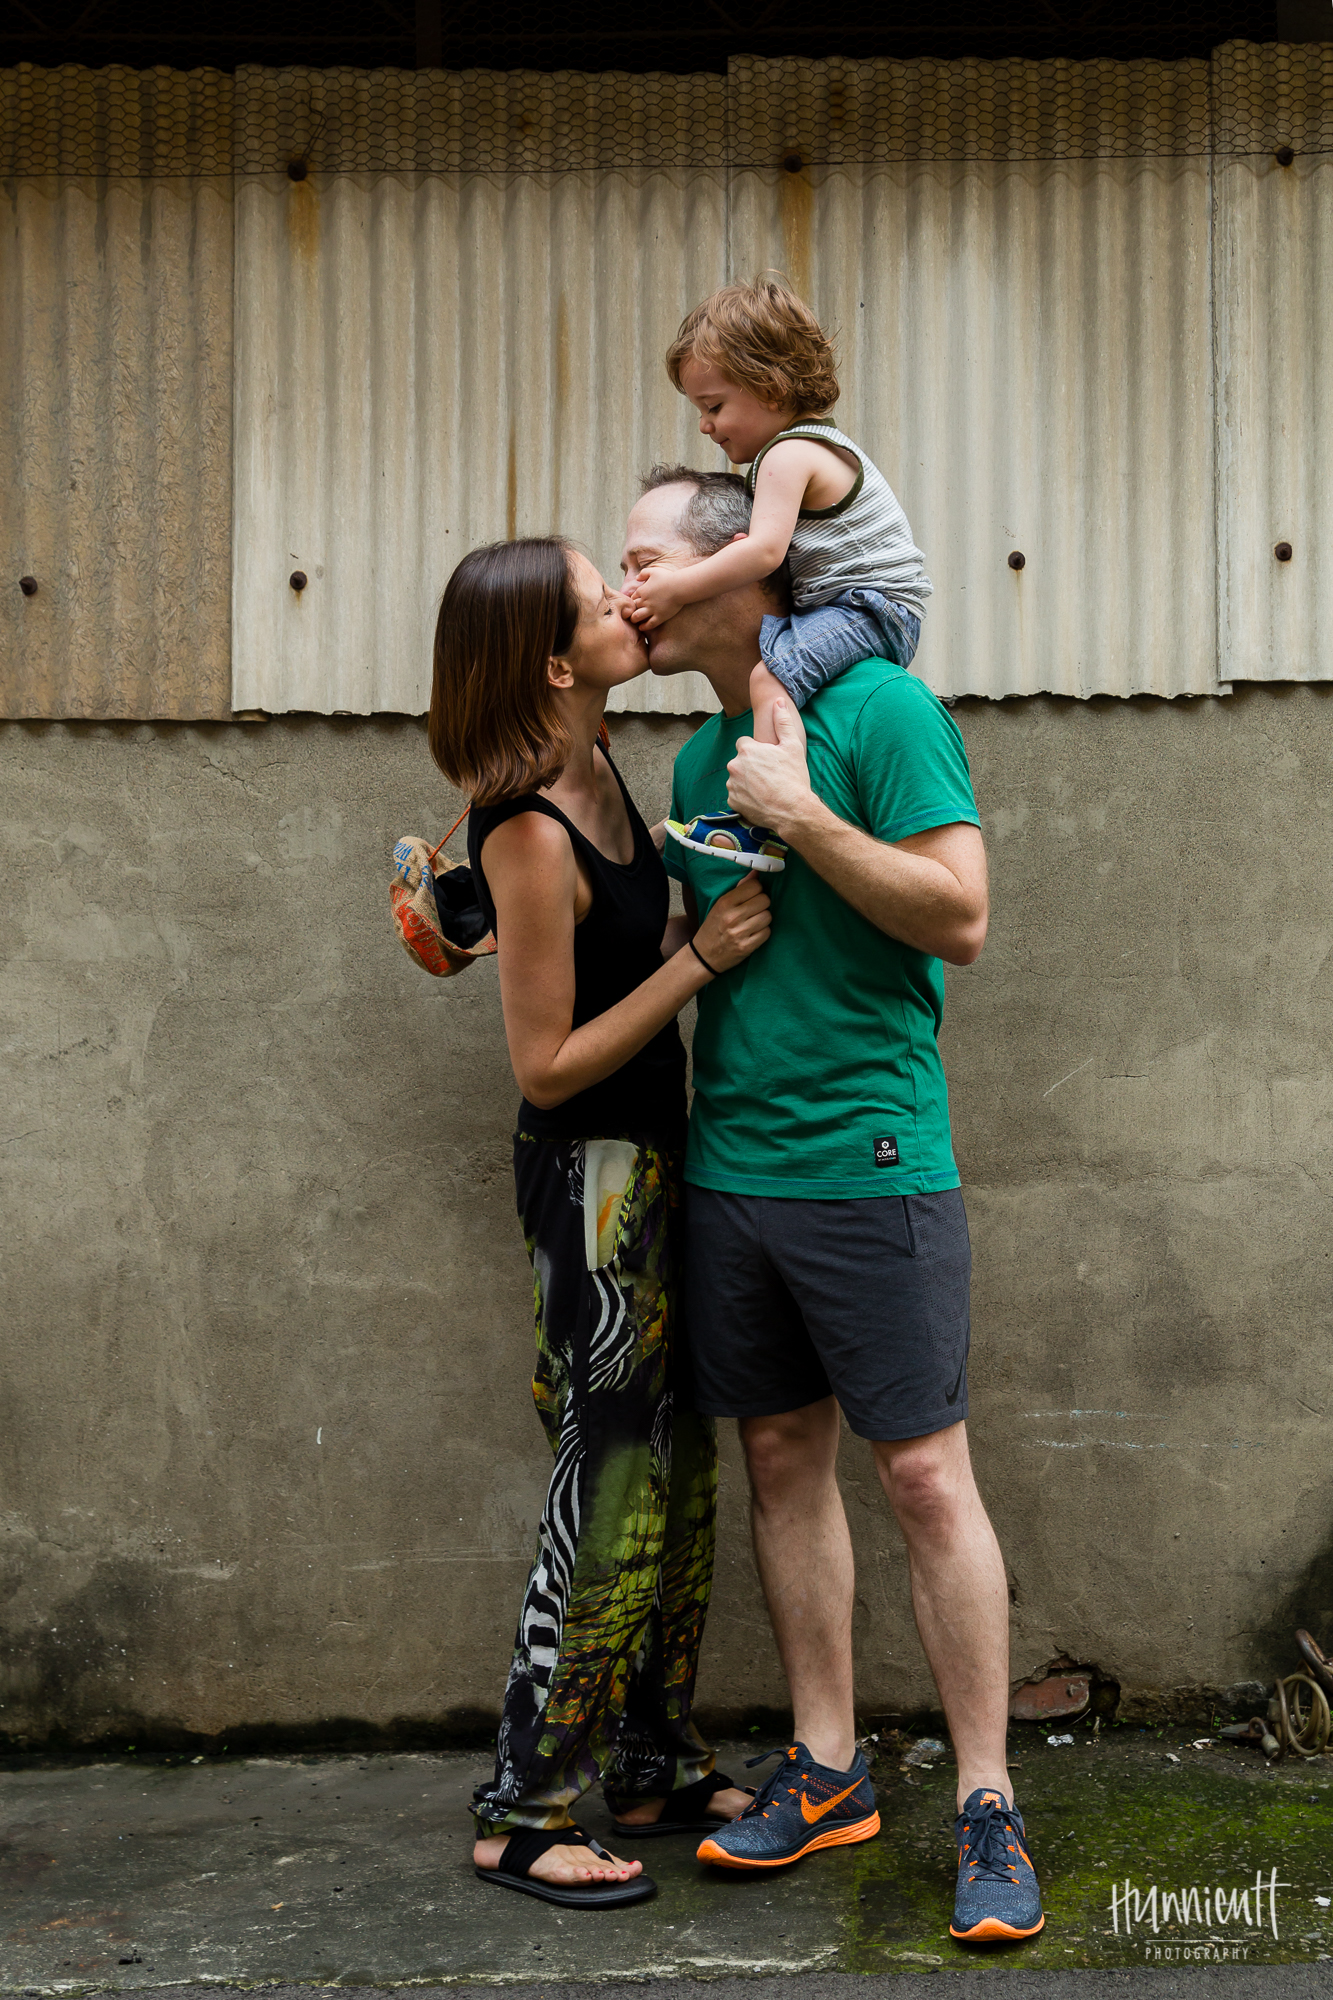 Hunnicutt_Photography_Taichung_Urban_Lifestyle_Family_Photography-6